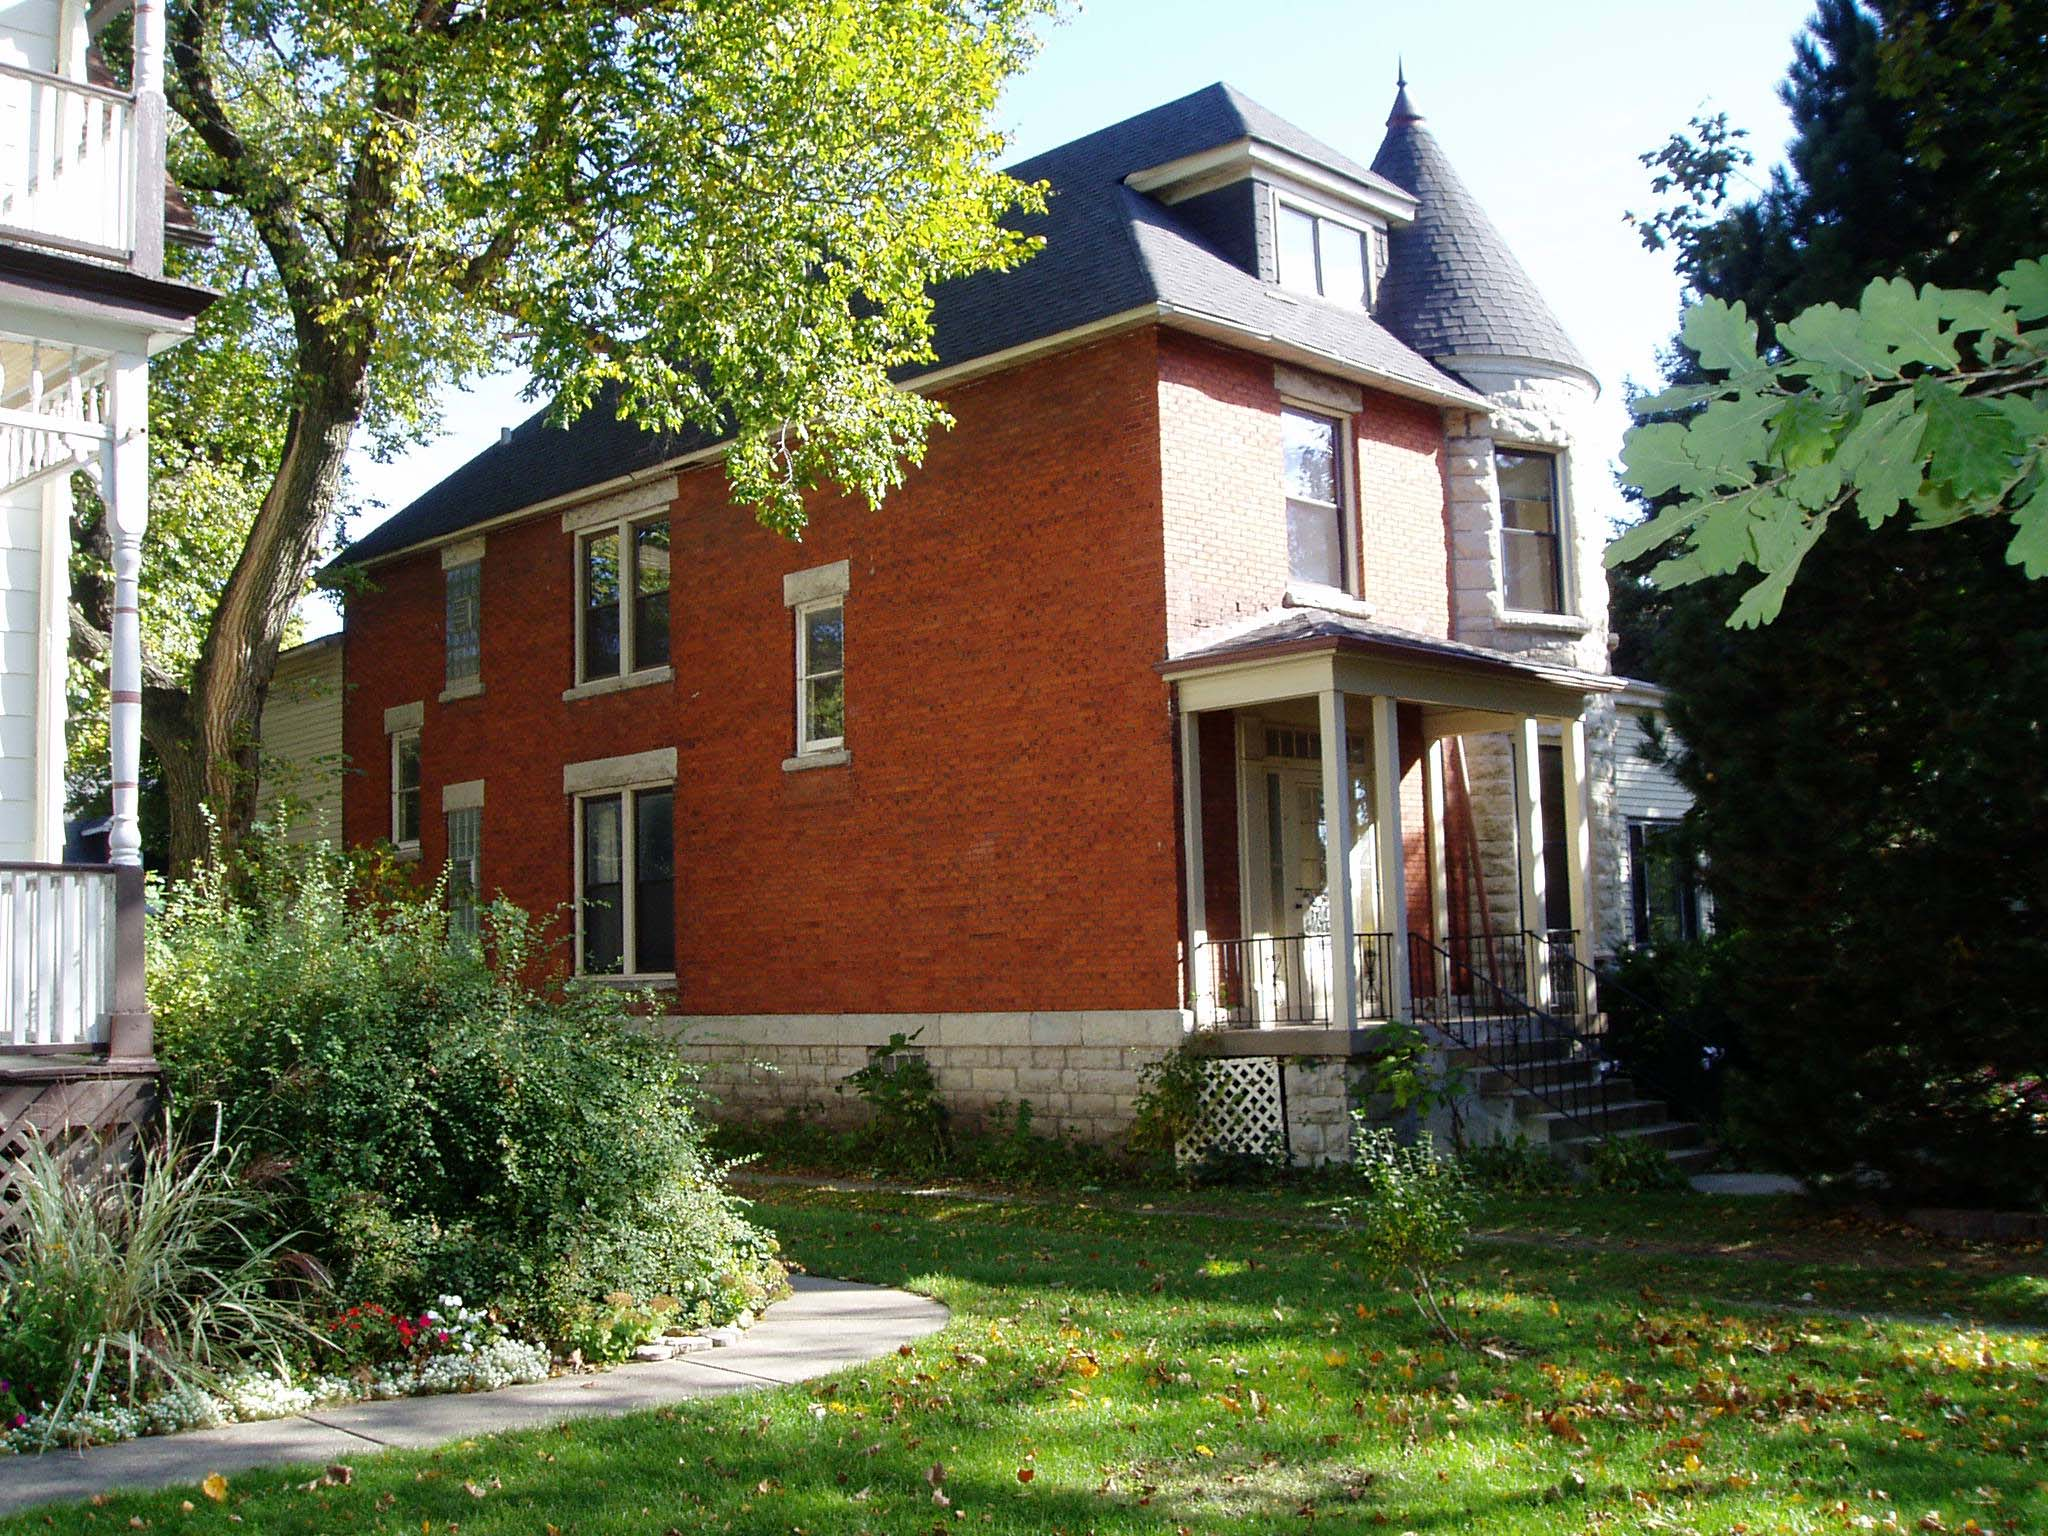 Uncover Clues to Your Home's History during May 7th Workshop at Elmhurst History Museum